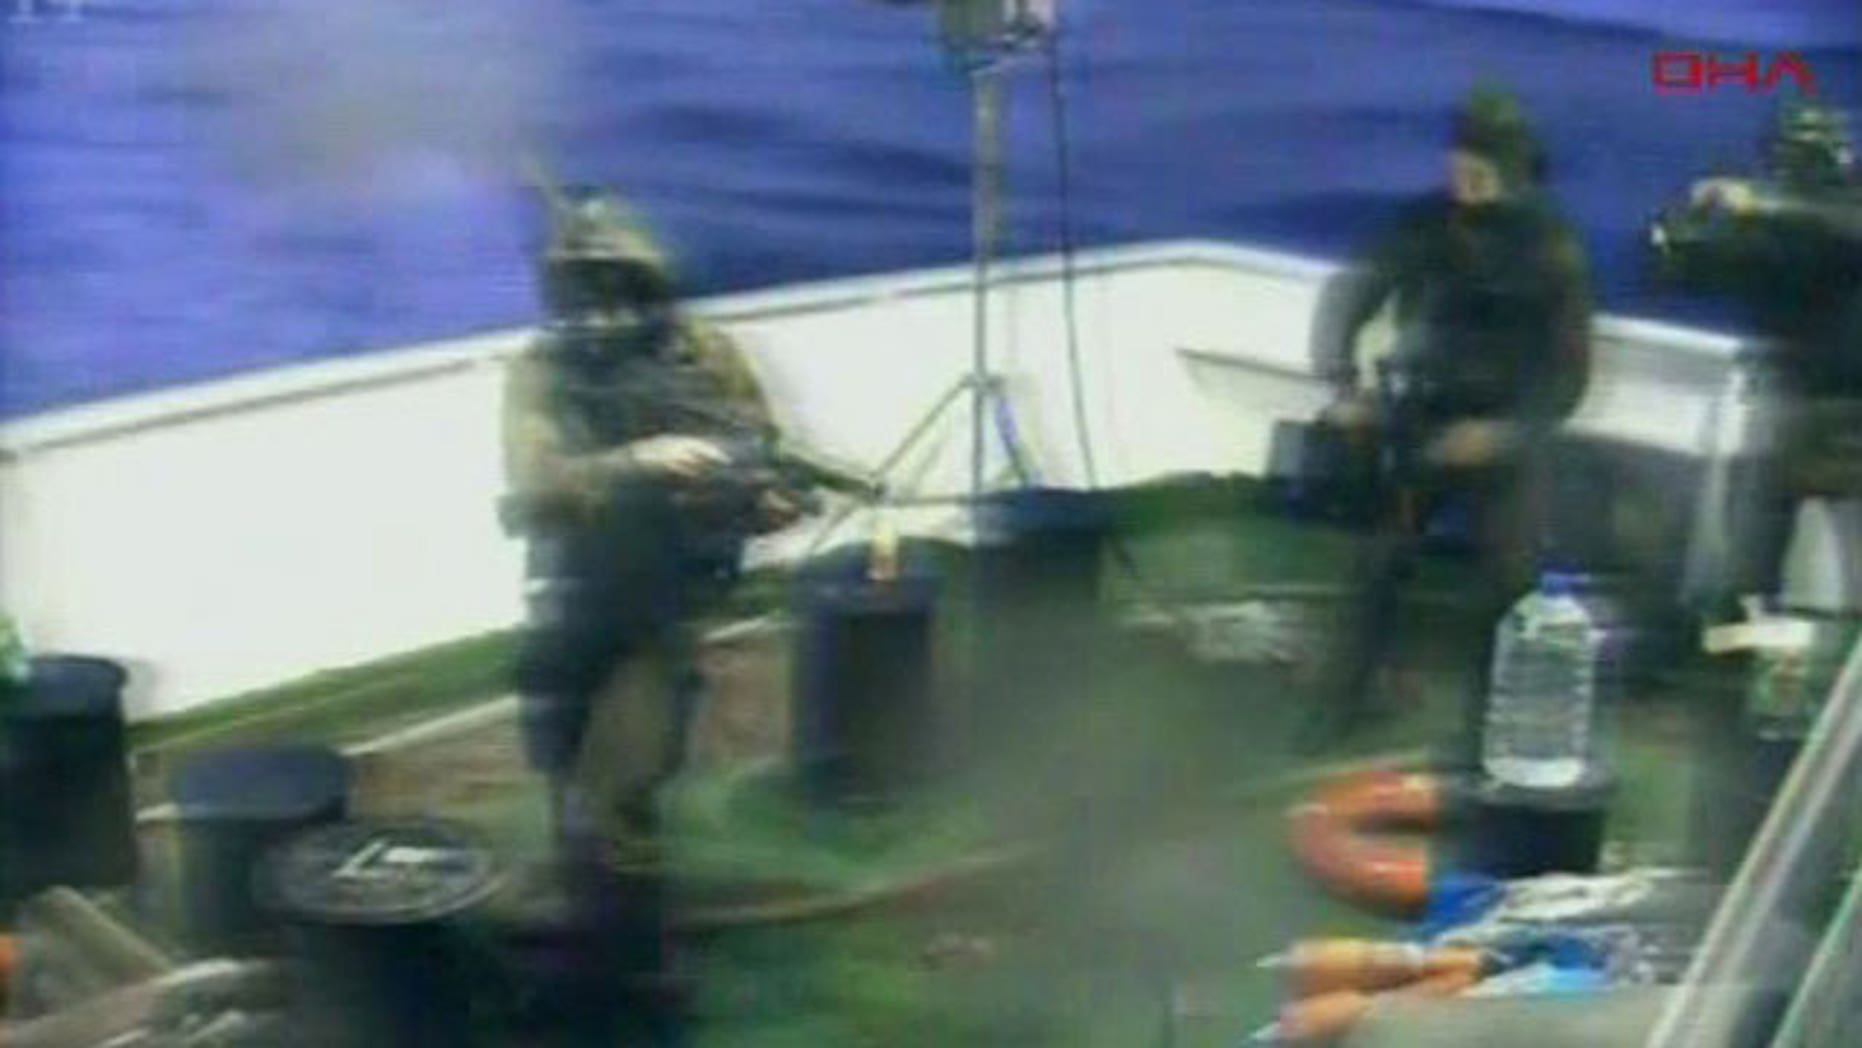 May 31: This video image released by the Turkish Aid group IHH purports to show Israeli soldiers aboard a military vessel in international waters off the Gaza coast surrounding a Turkish ship.